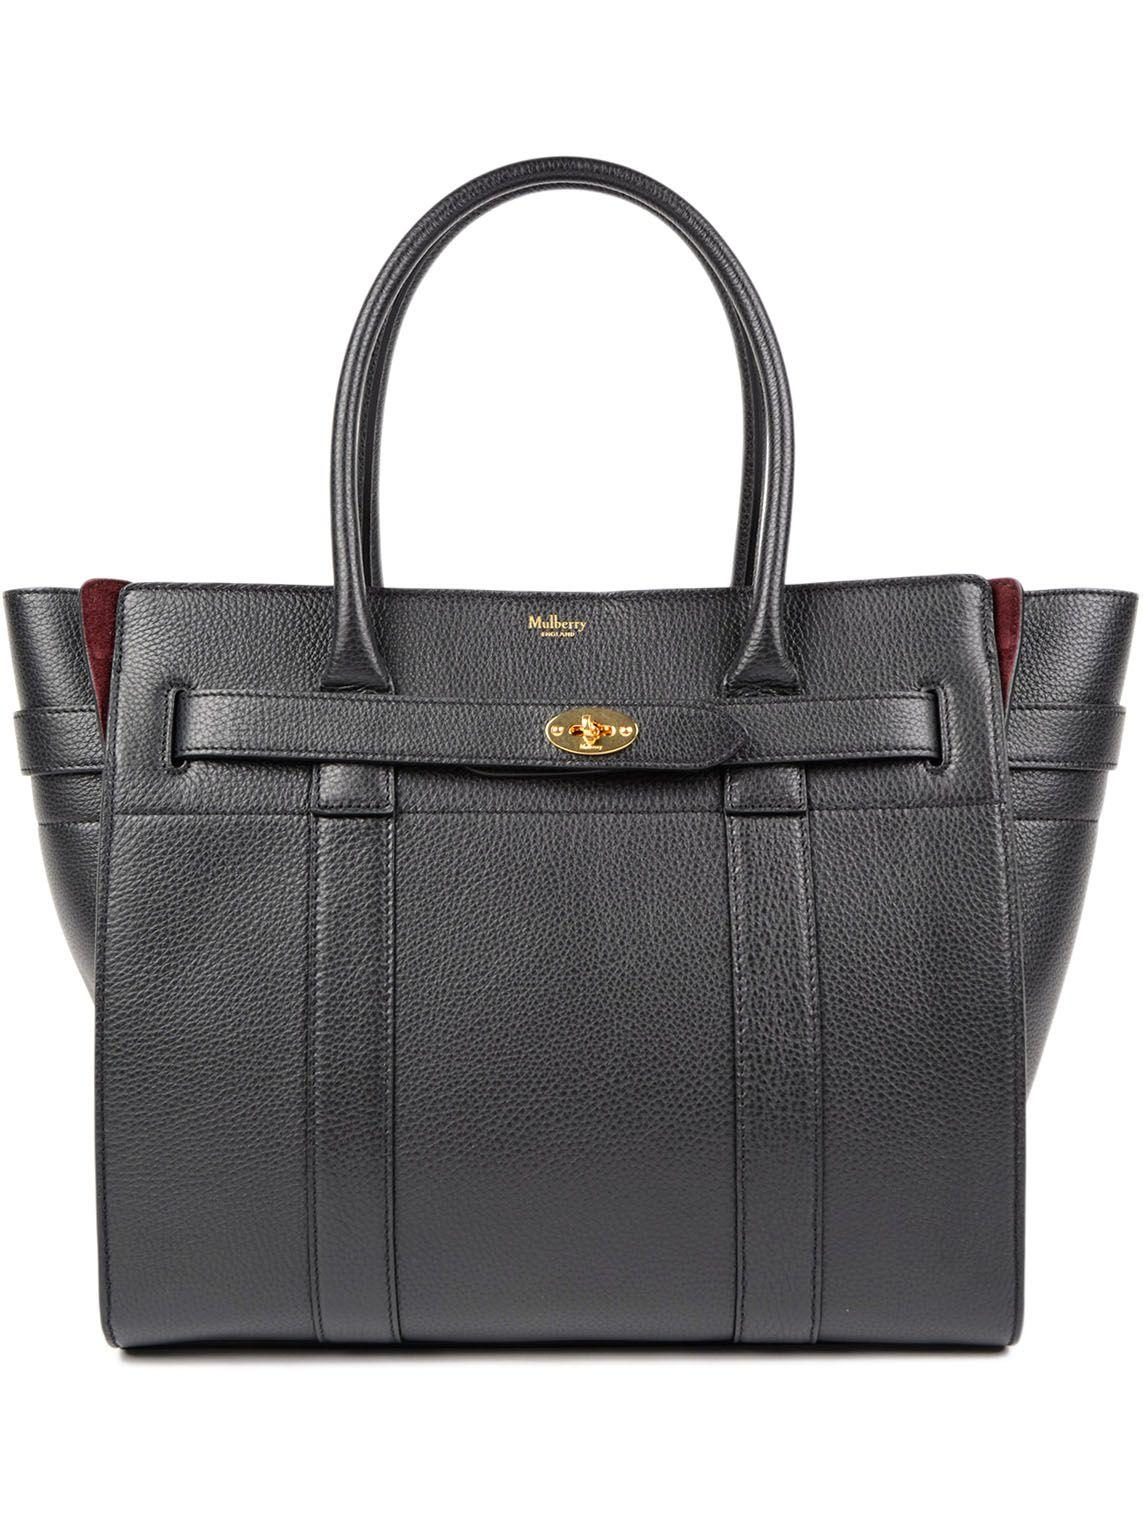 Mulberry Bayswater Tote In Black